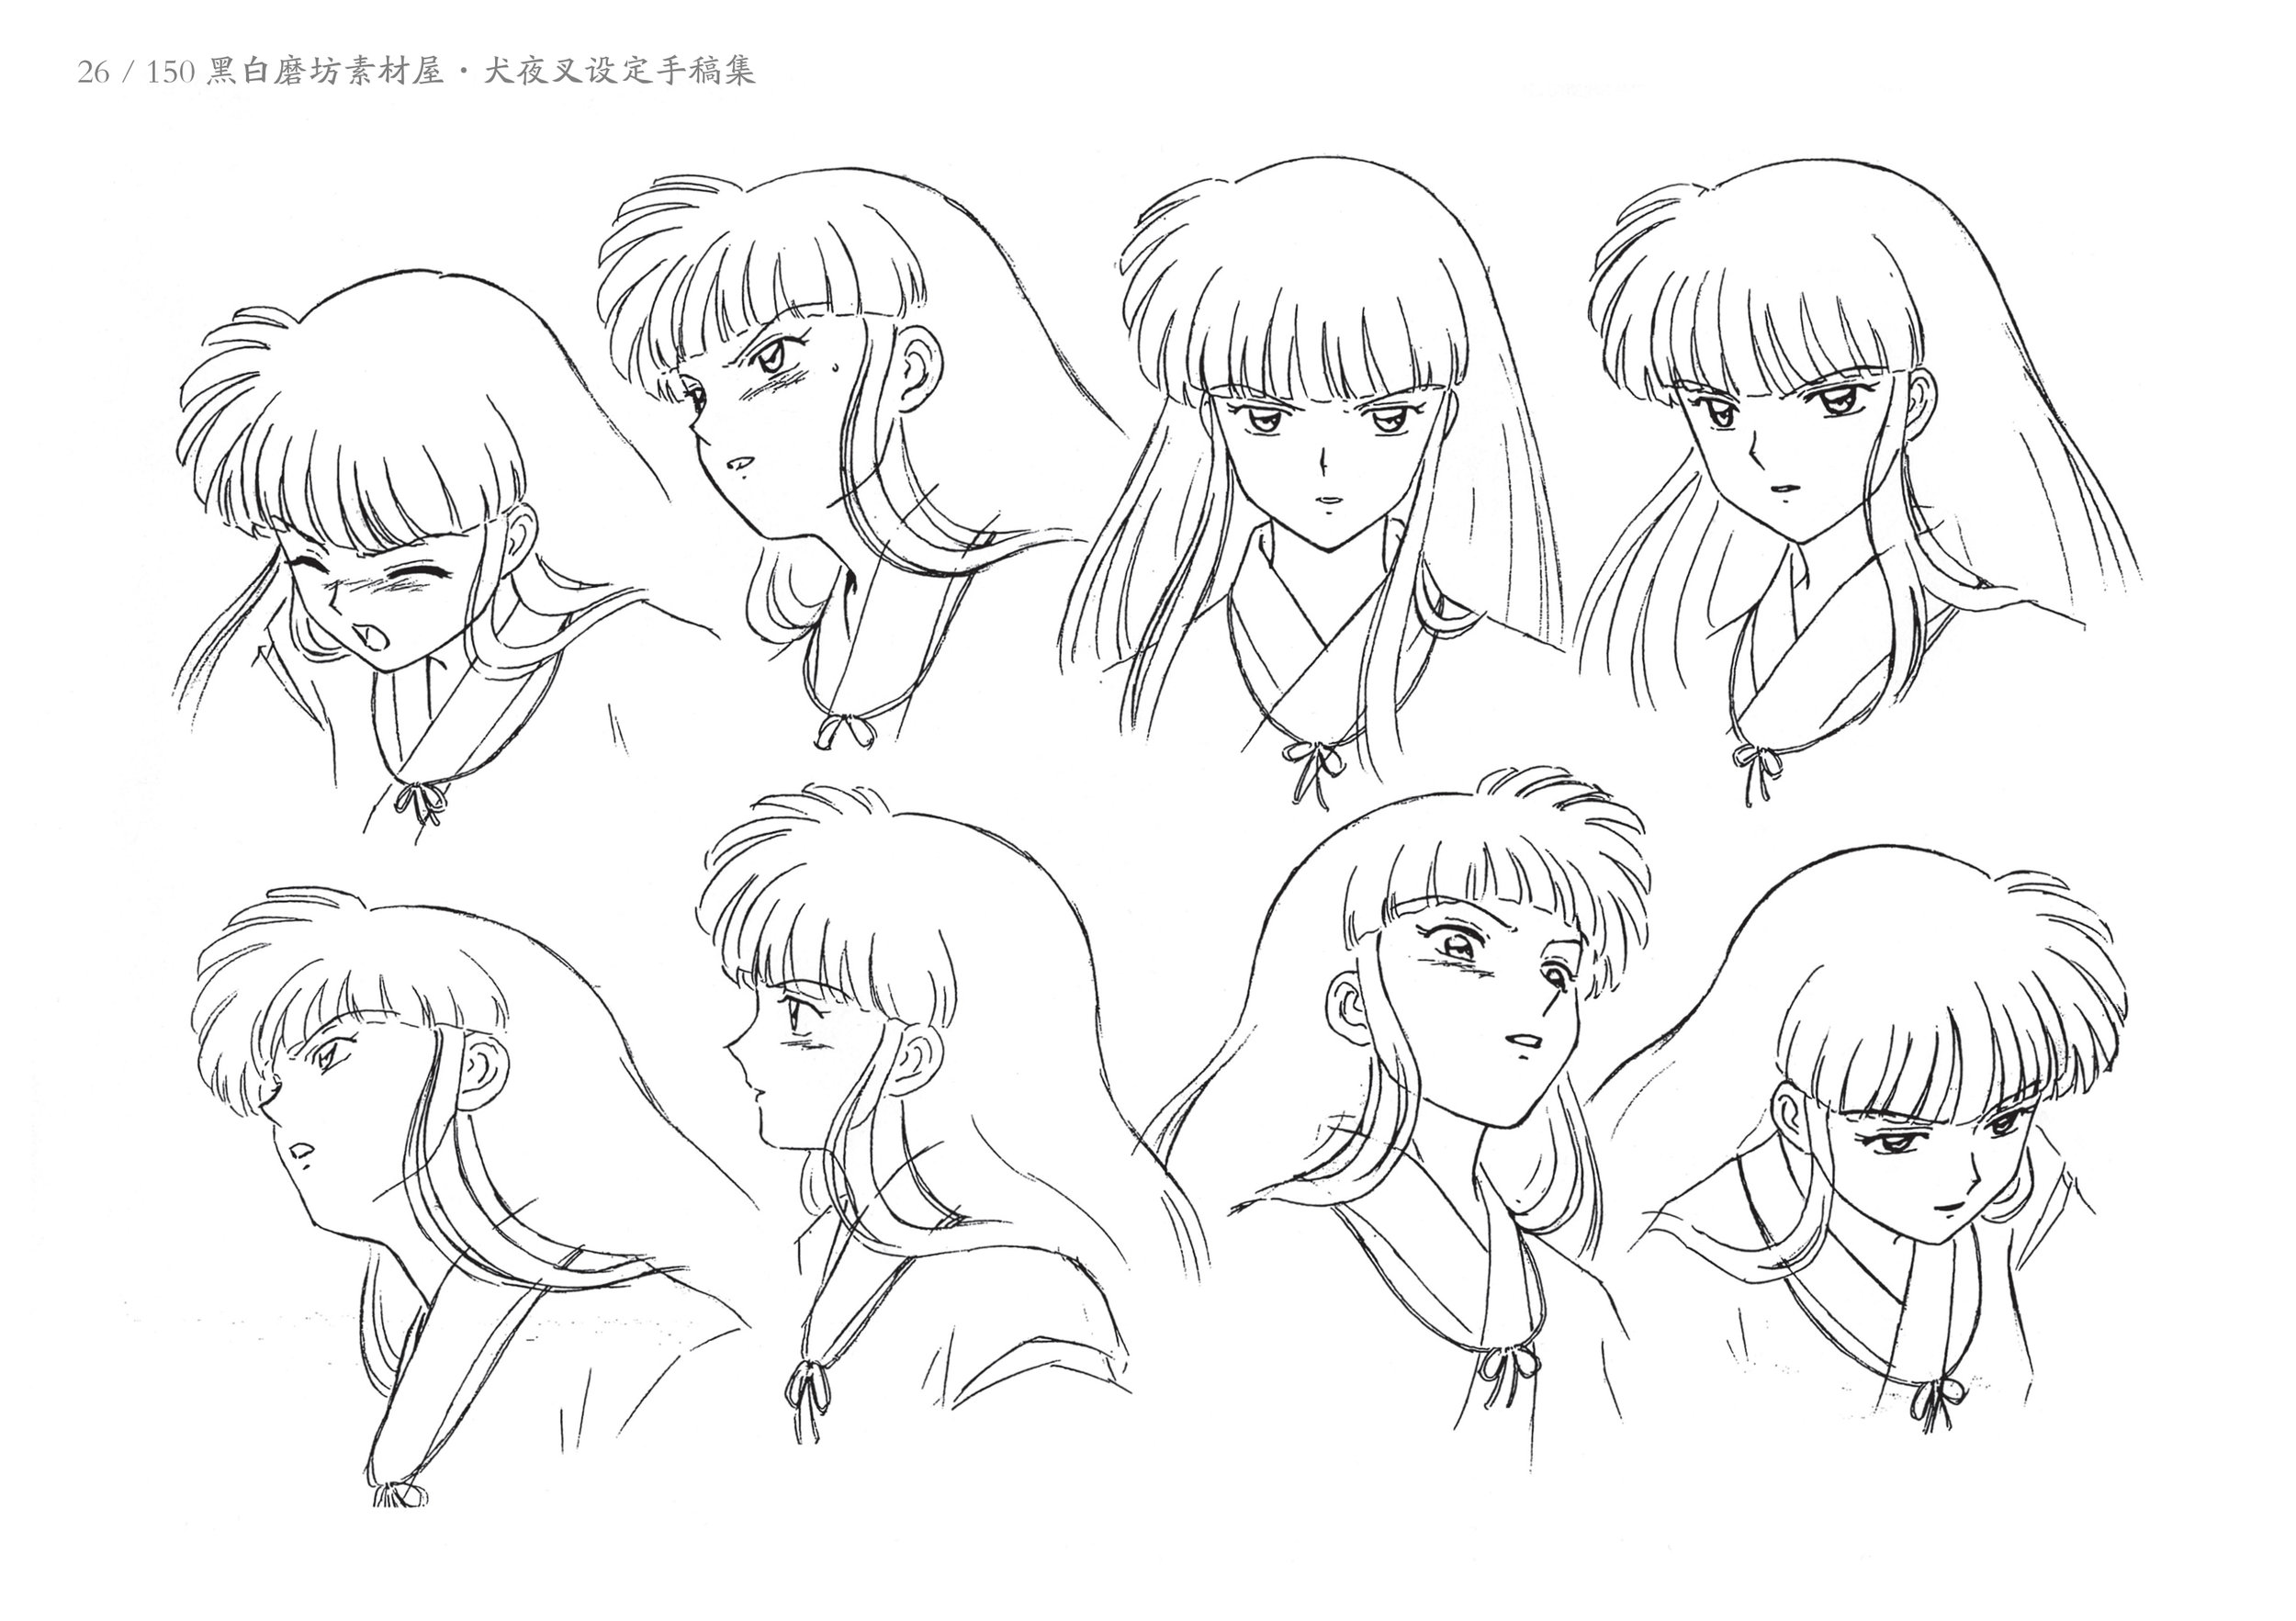 Art of the Inuyasha A - 20.jpg